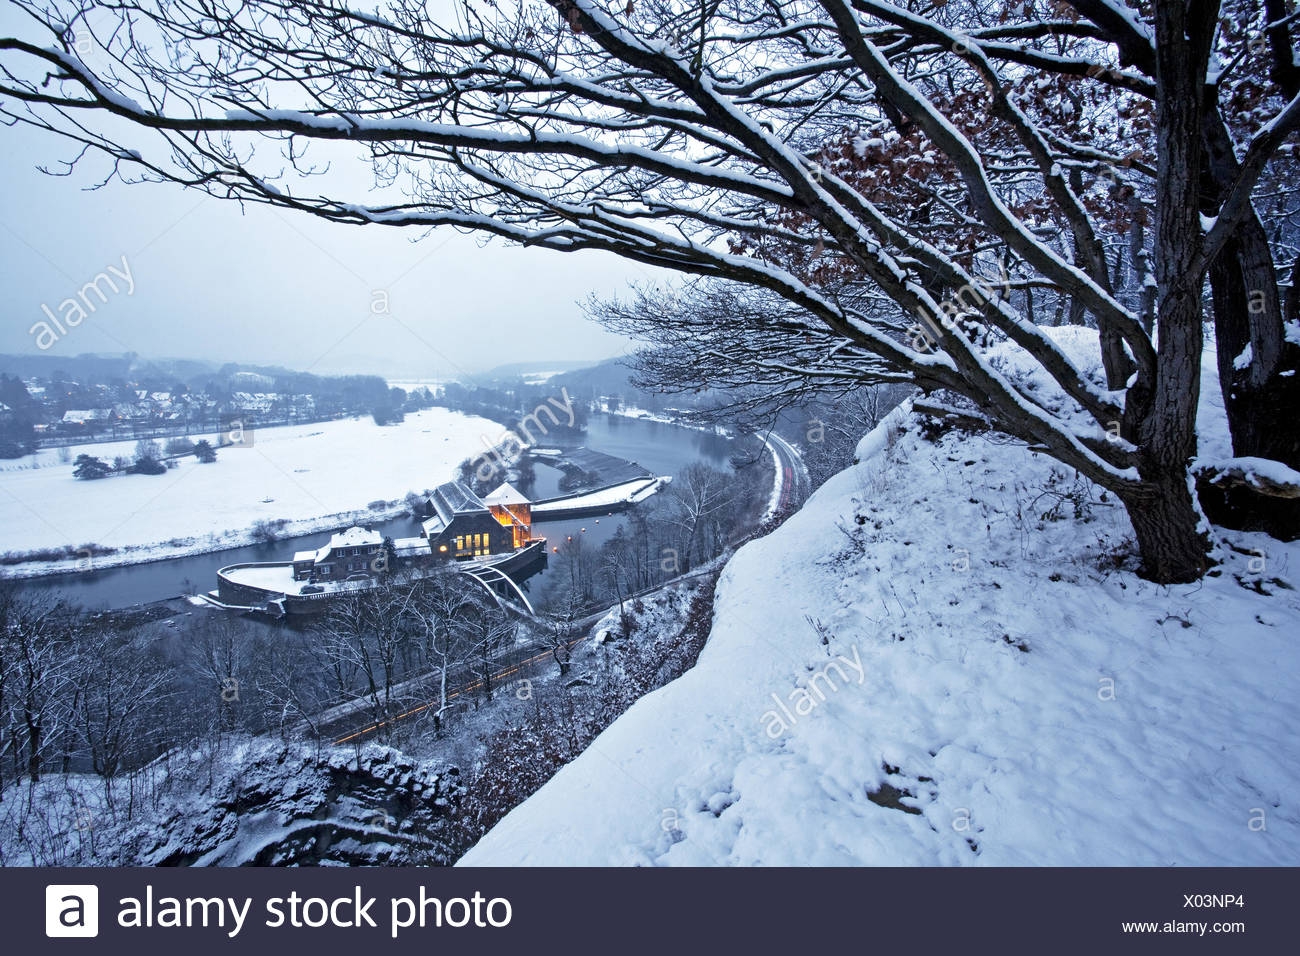 The Ruhr valley in winter, Witten, Germany - Stock Image